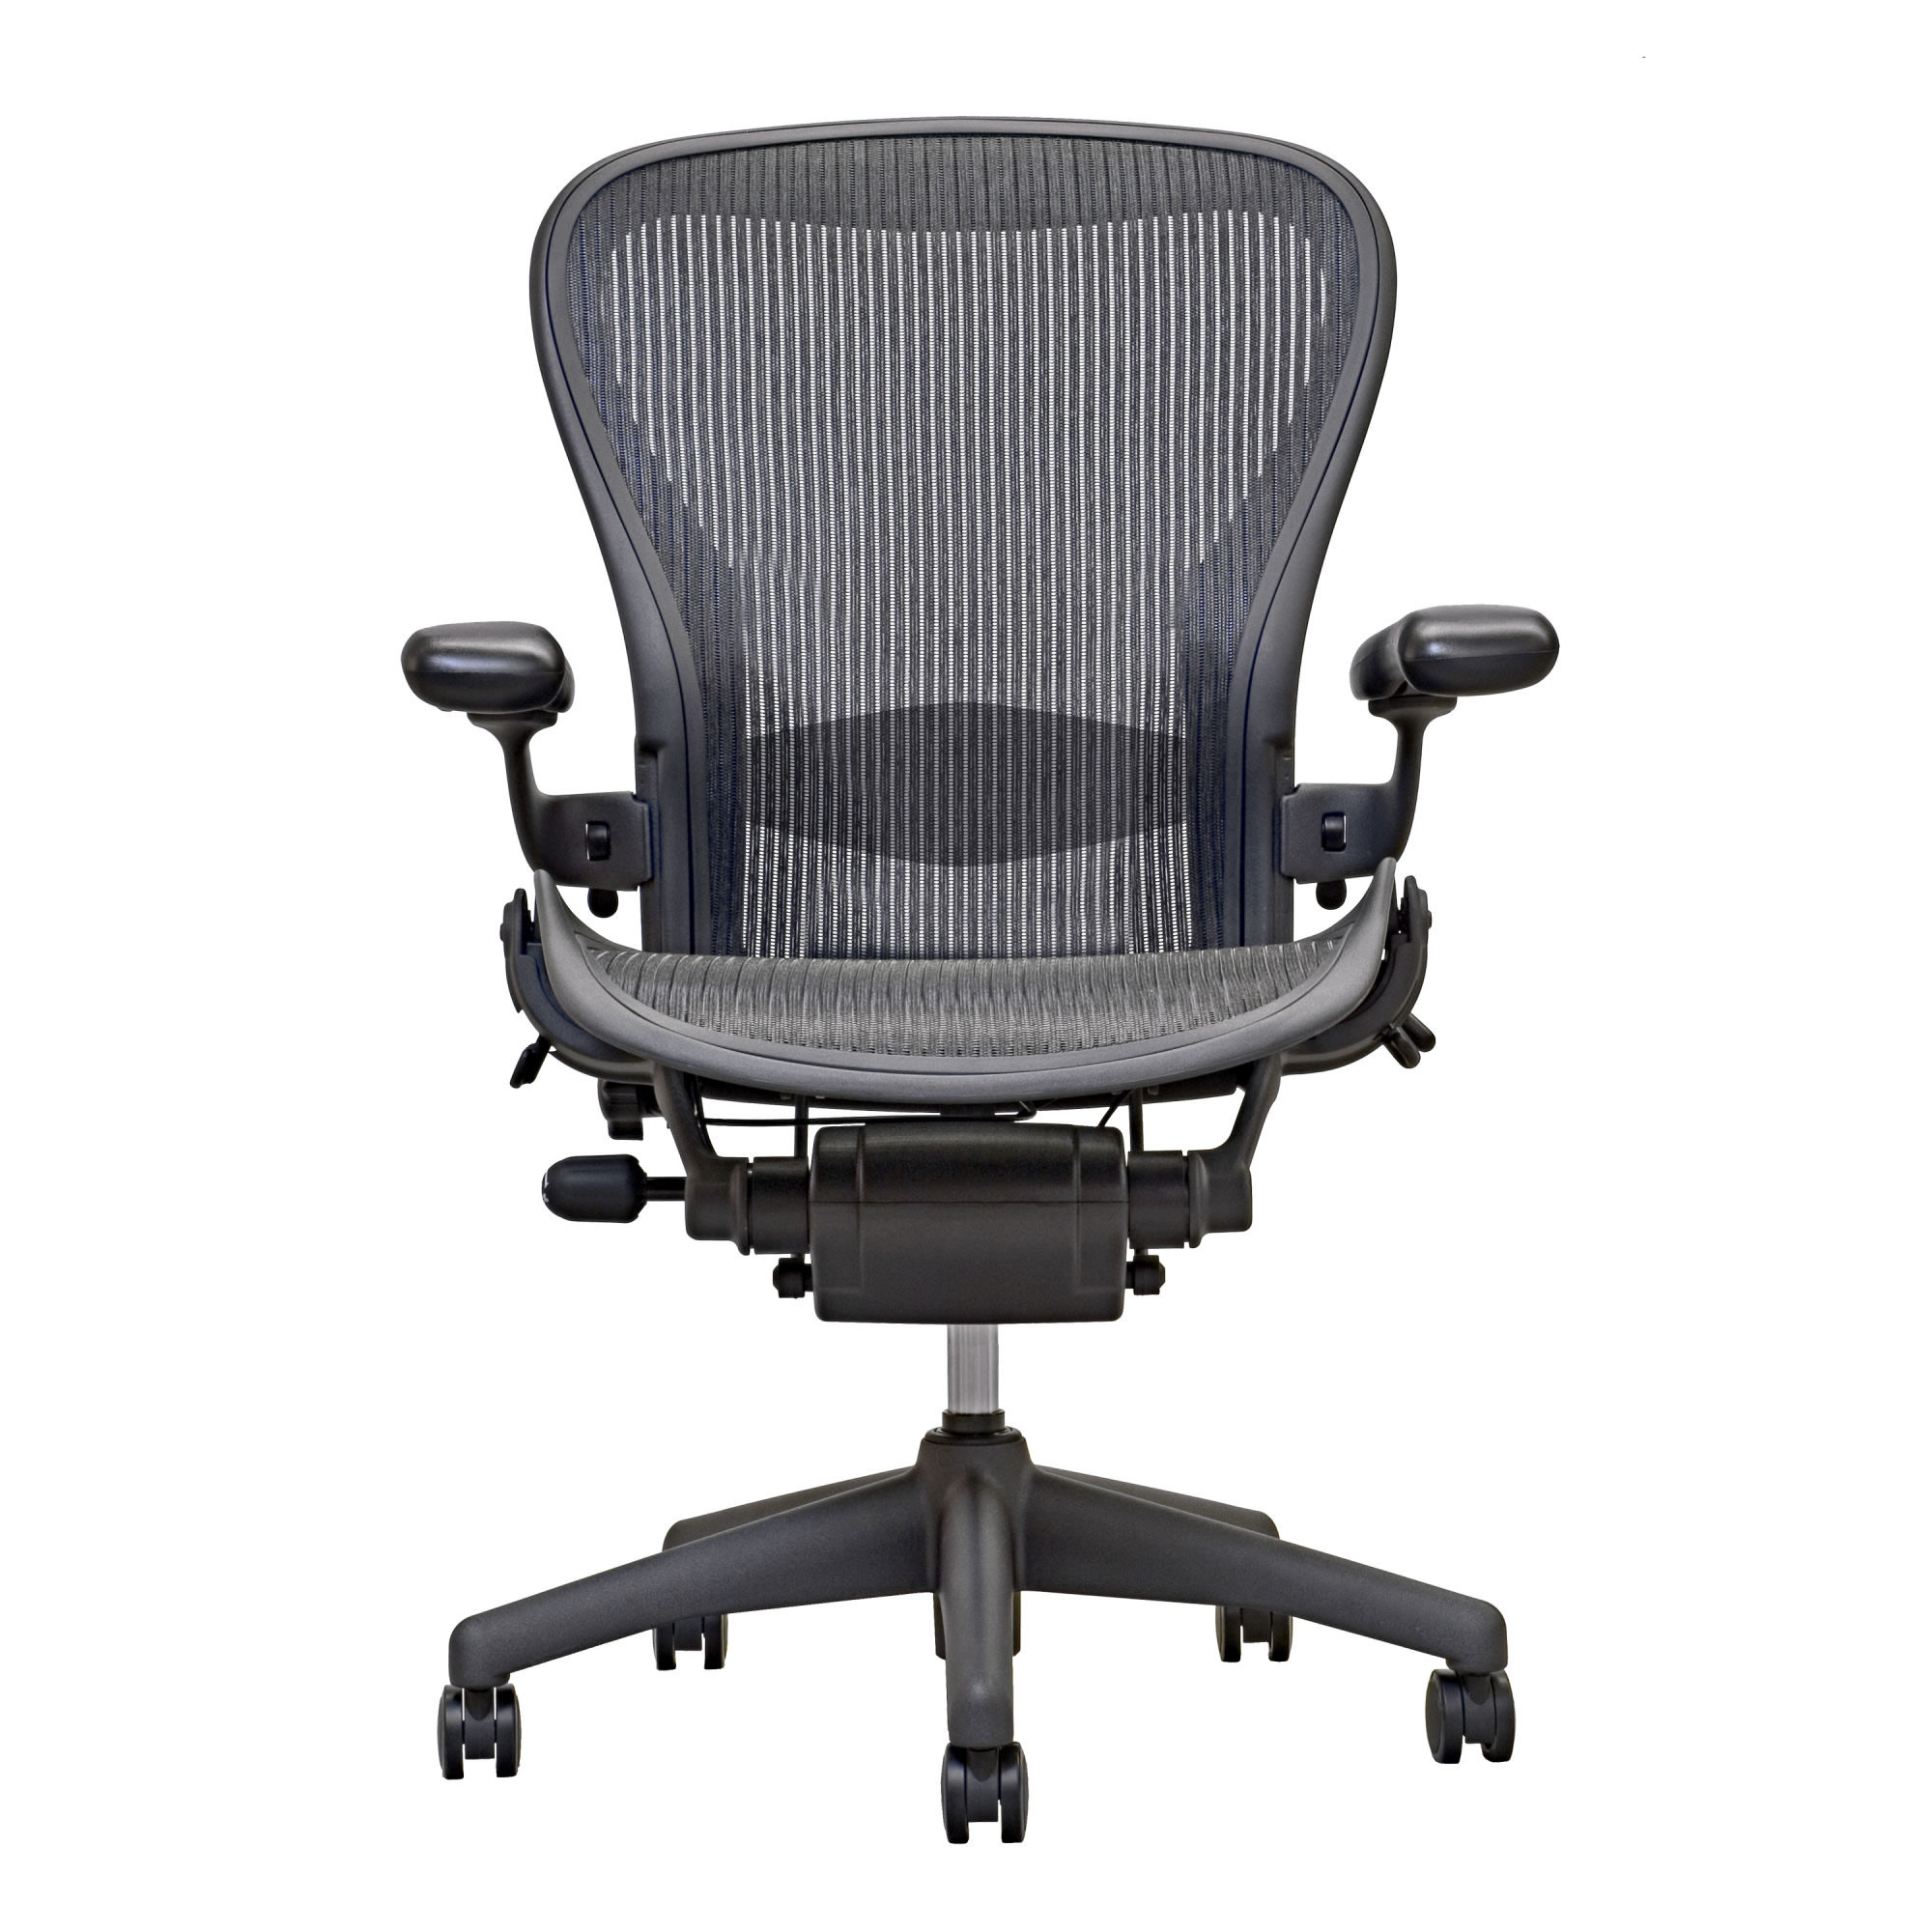 Aeron Chair By Herman Miller   Adjustable Lumbar   Carbon